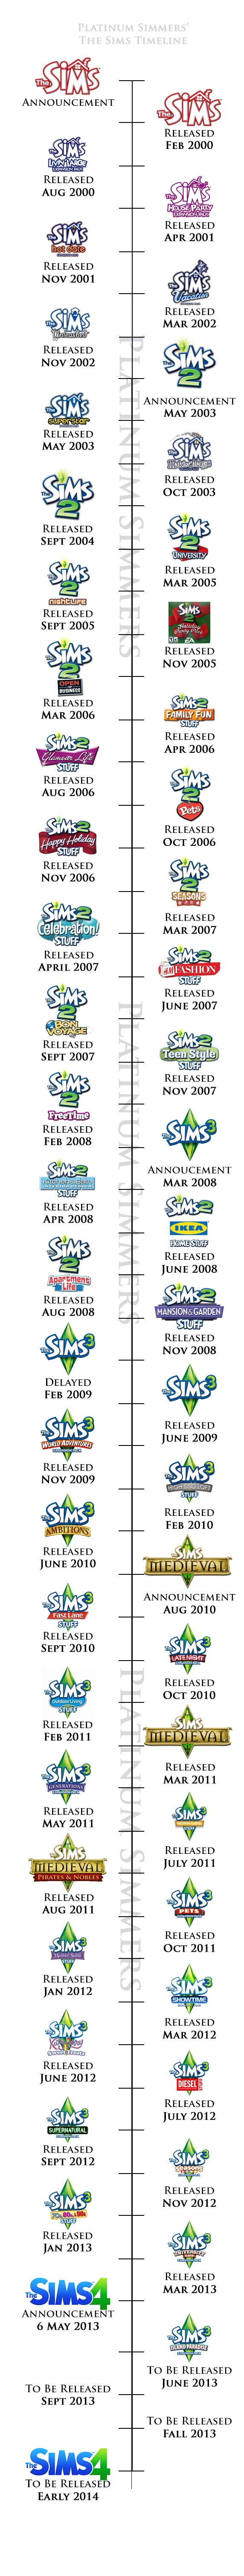 The Sims History in Timelines • Platinum Simmers--OH GOD!! I almost all all of them!